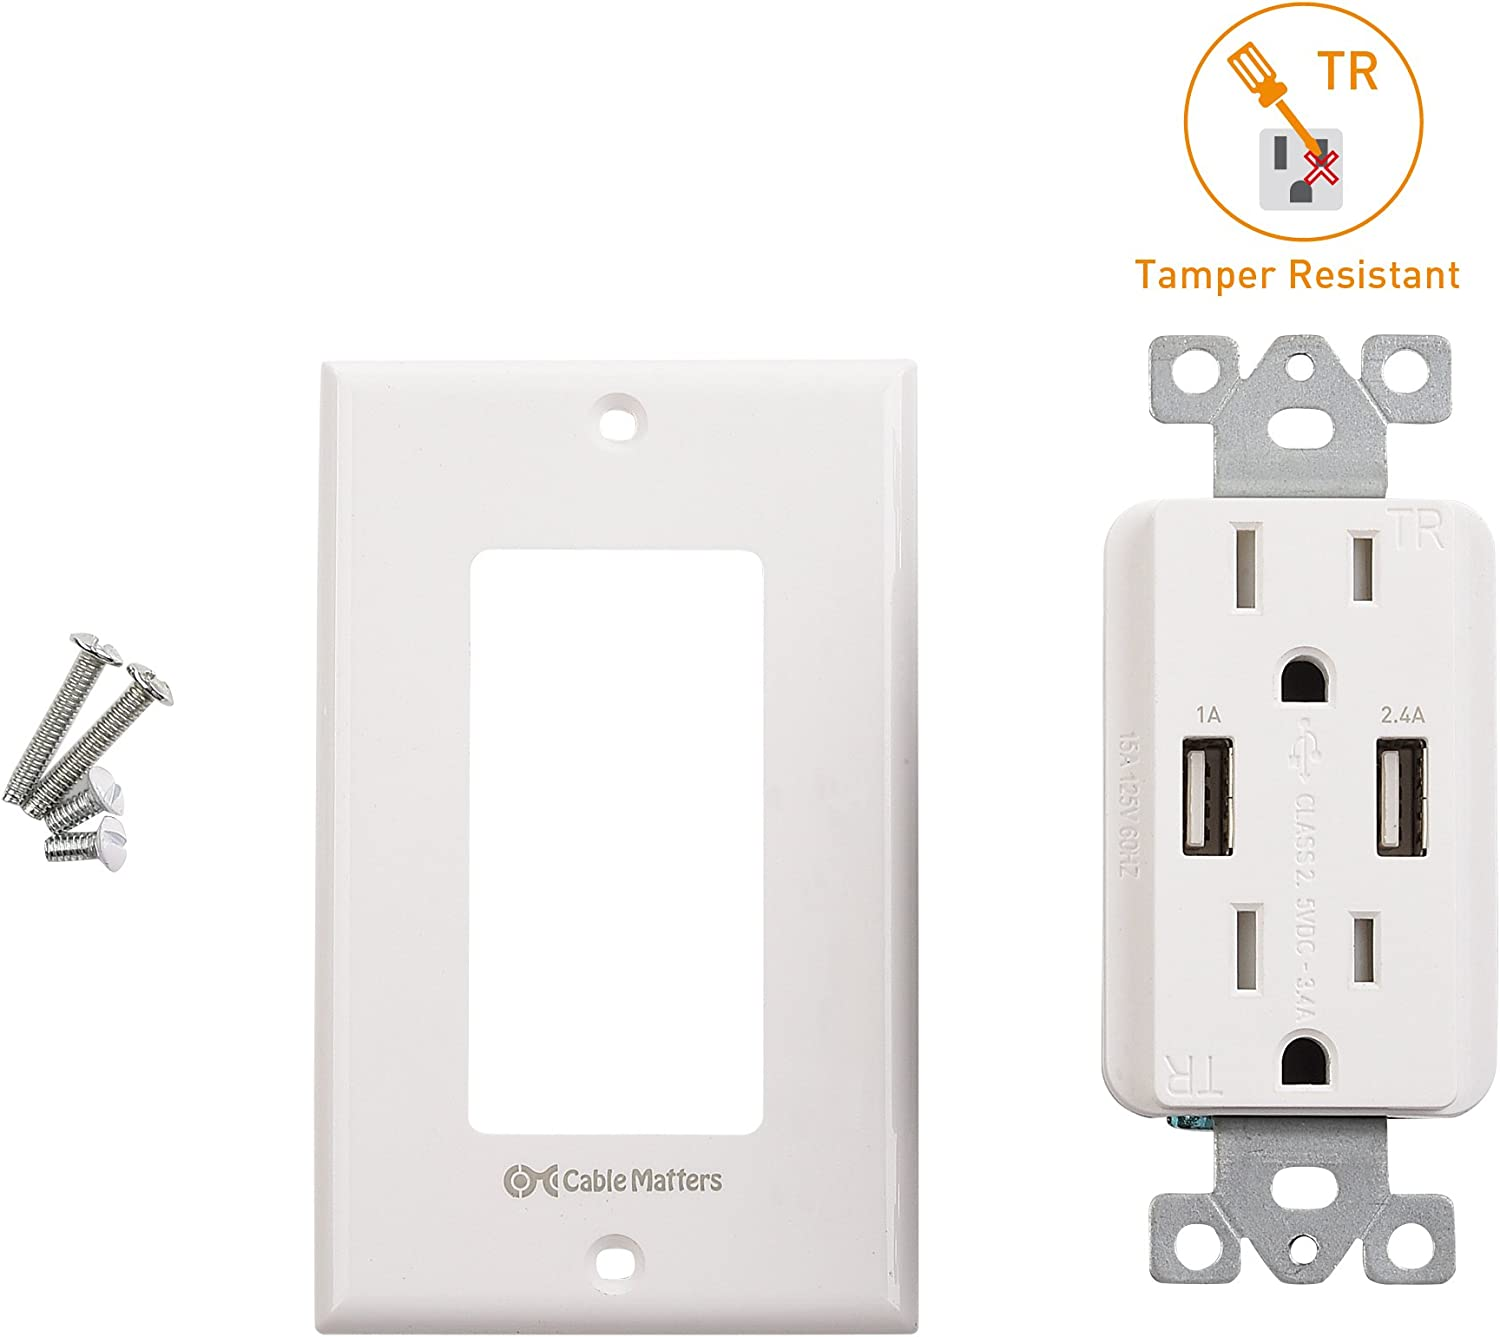 Cable Matters Tamper Resistant Duplex AC Outlet with 3.4A USB Charging and Faceplate 402021-WHT